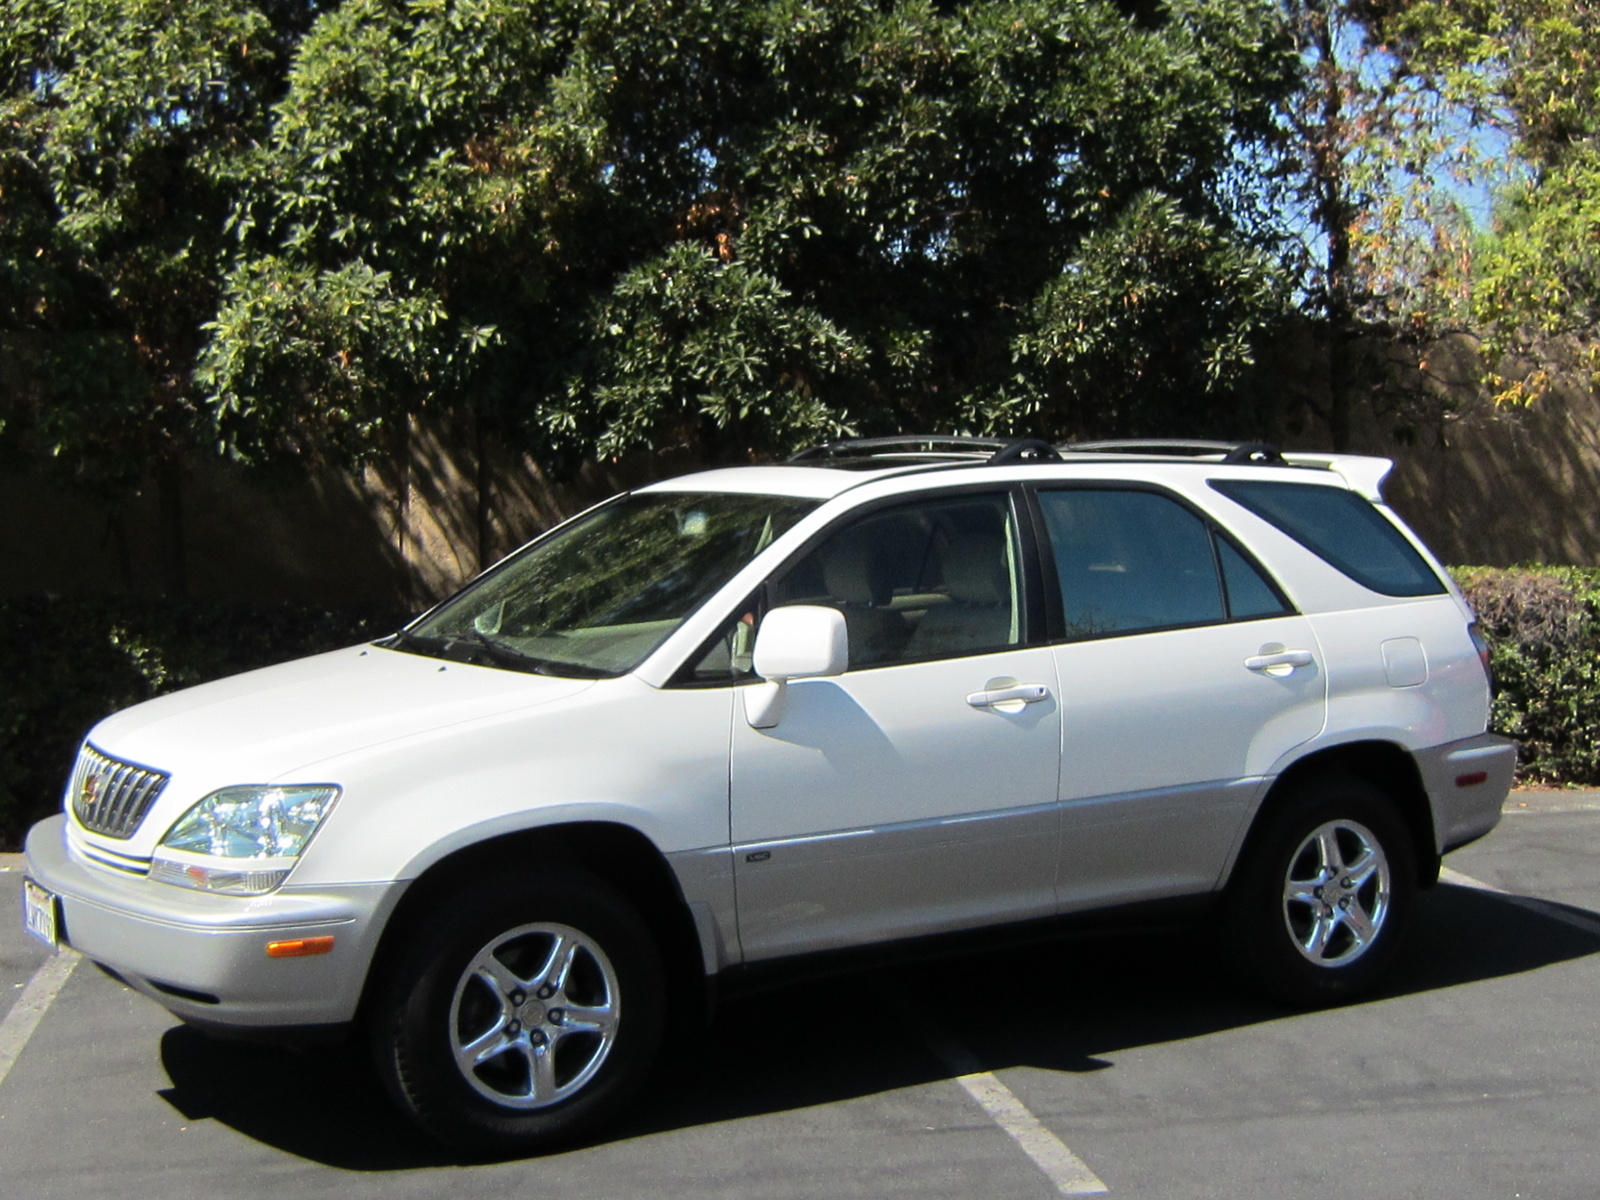 Lexus RX 300 2002 photo - 6